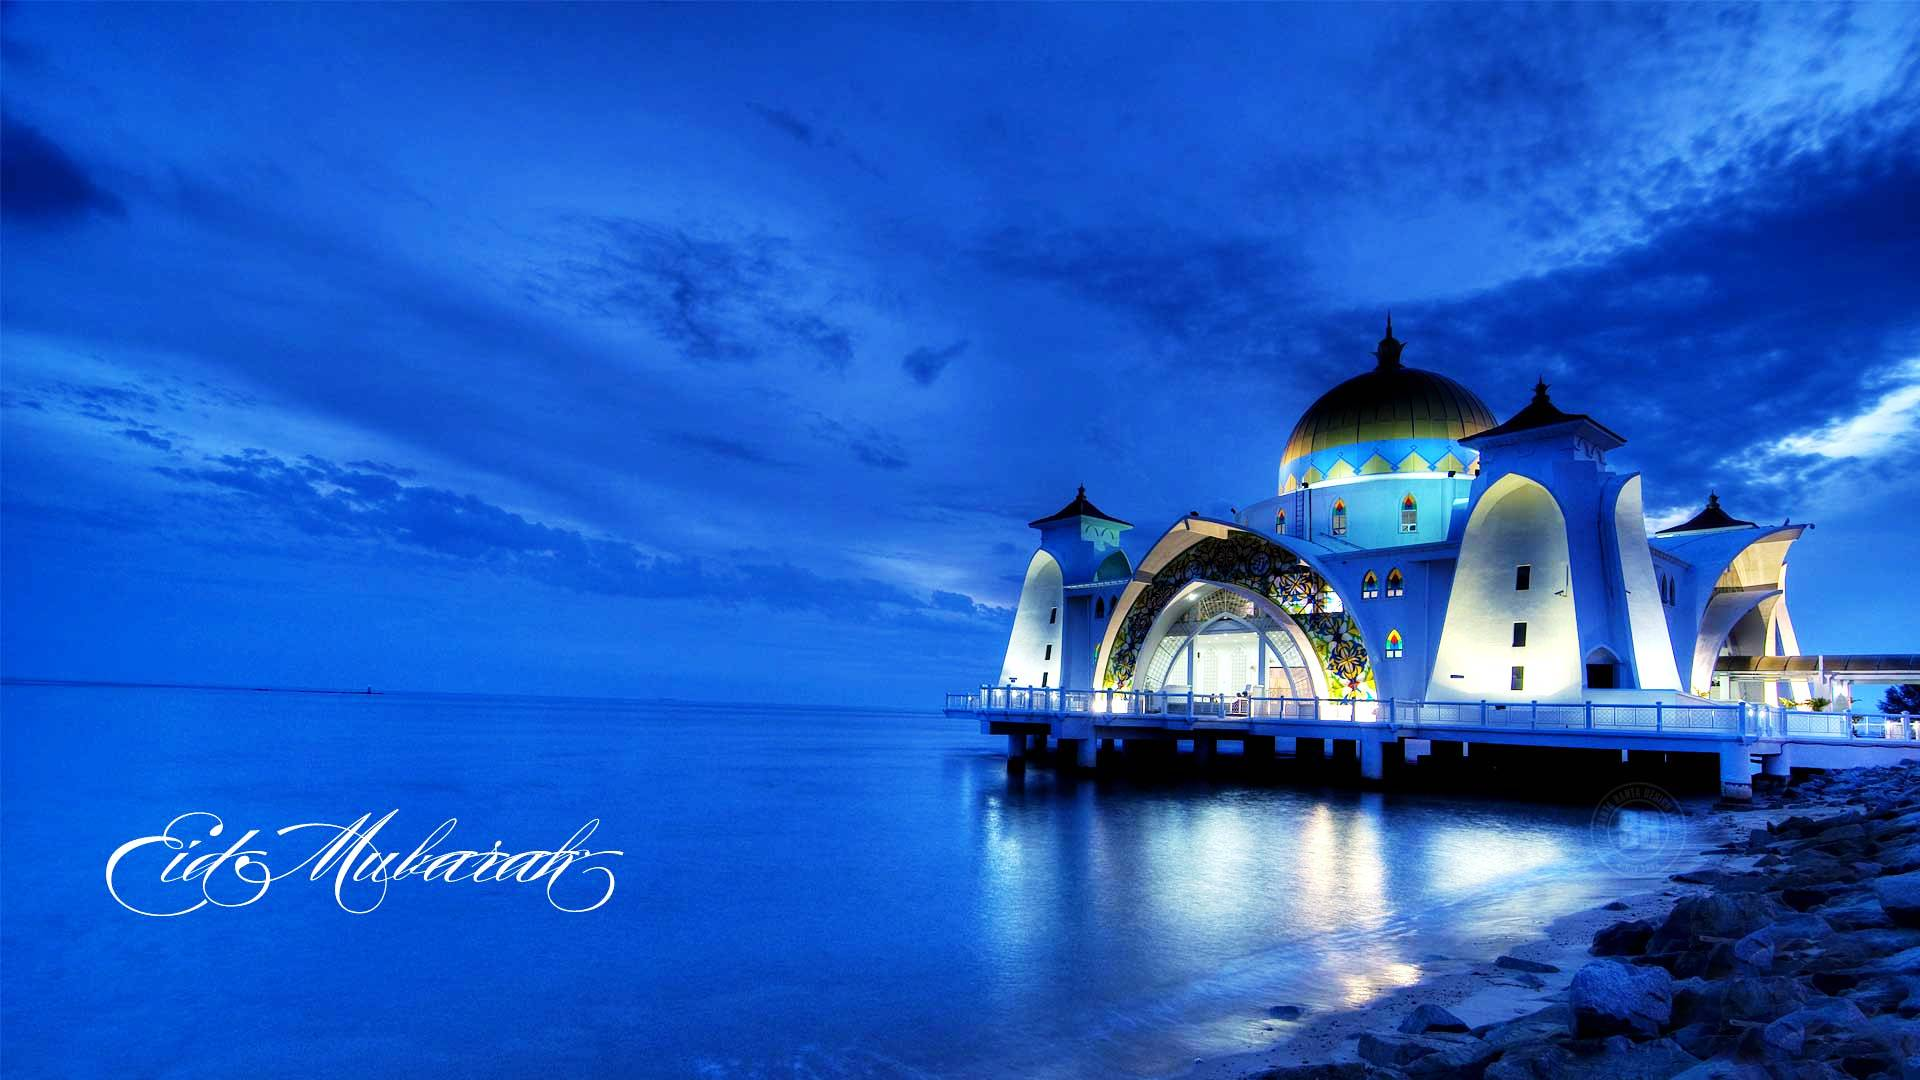 Eid Mubarak Wallpaper high resolution